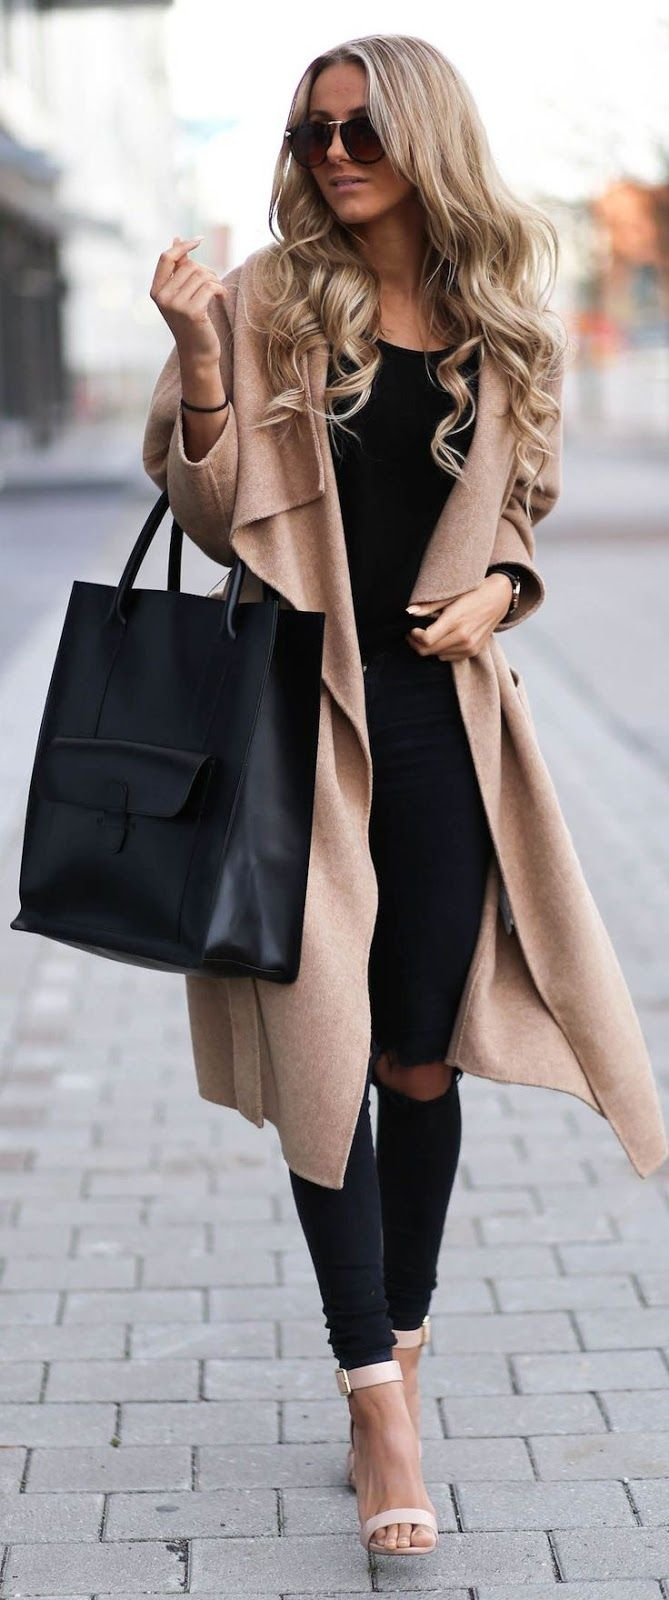 25 years old : I want to be fashion writer! Too late?